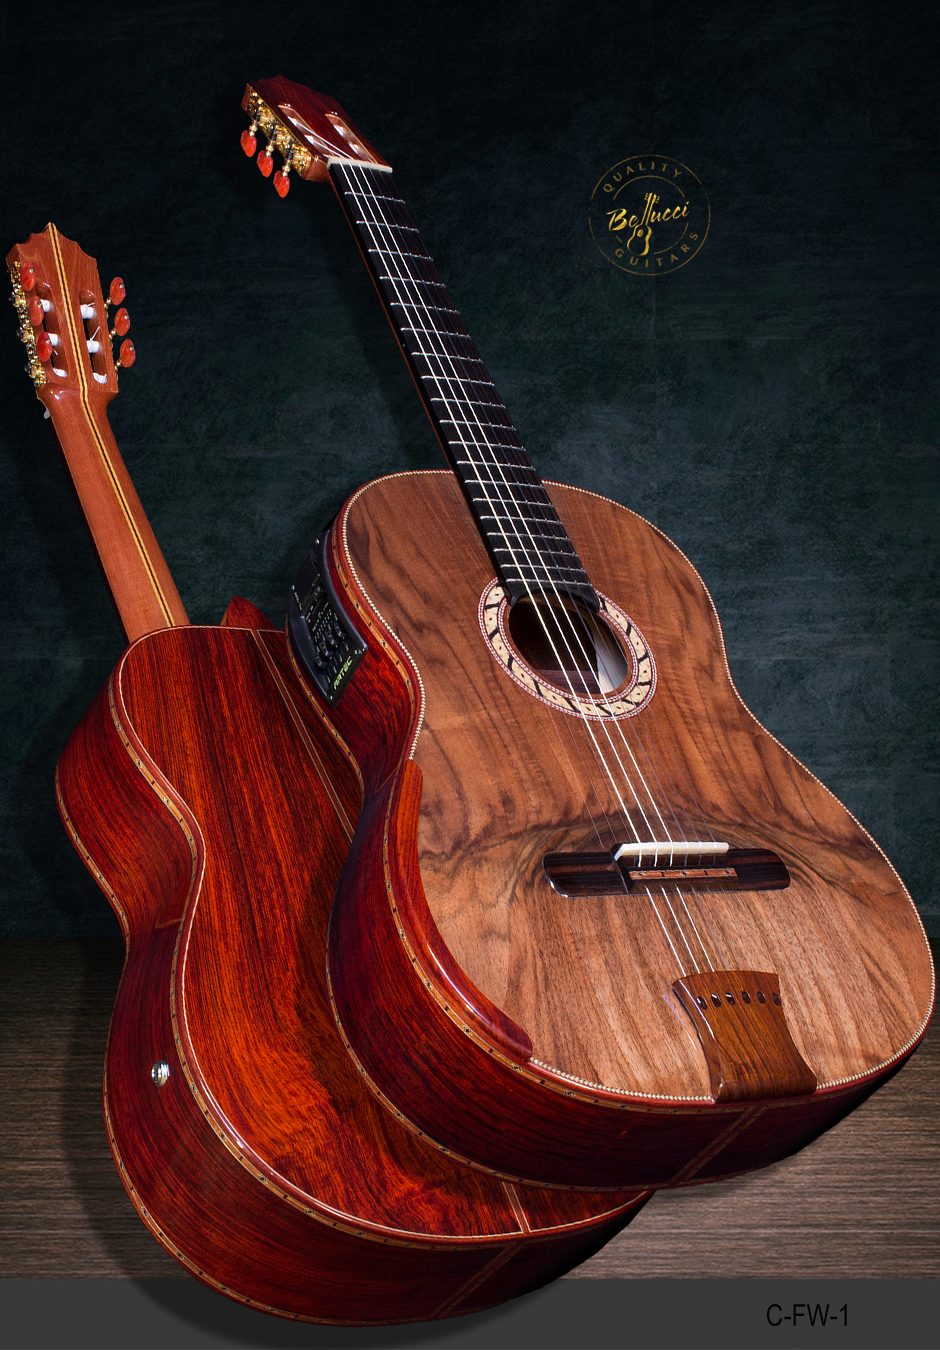 Cocobolo B&S Double top, Franquette Walnut Top, Masterpiece. Model C-FW-1